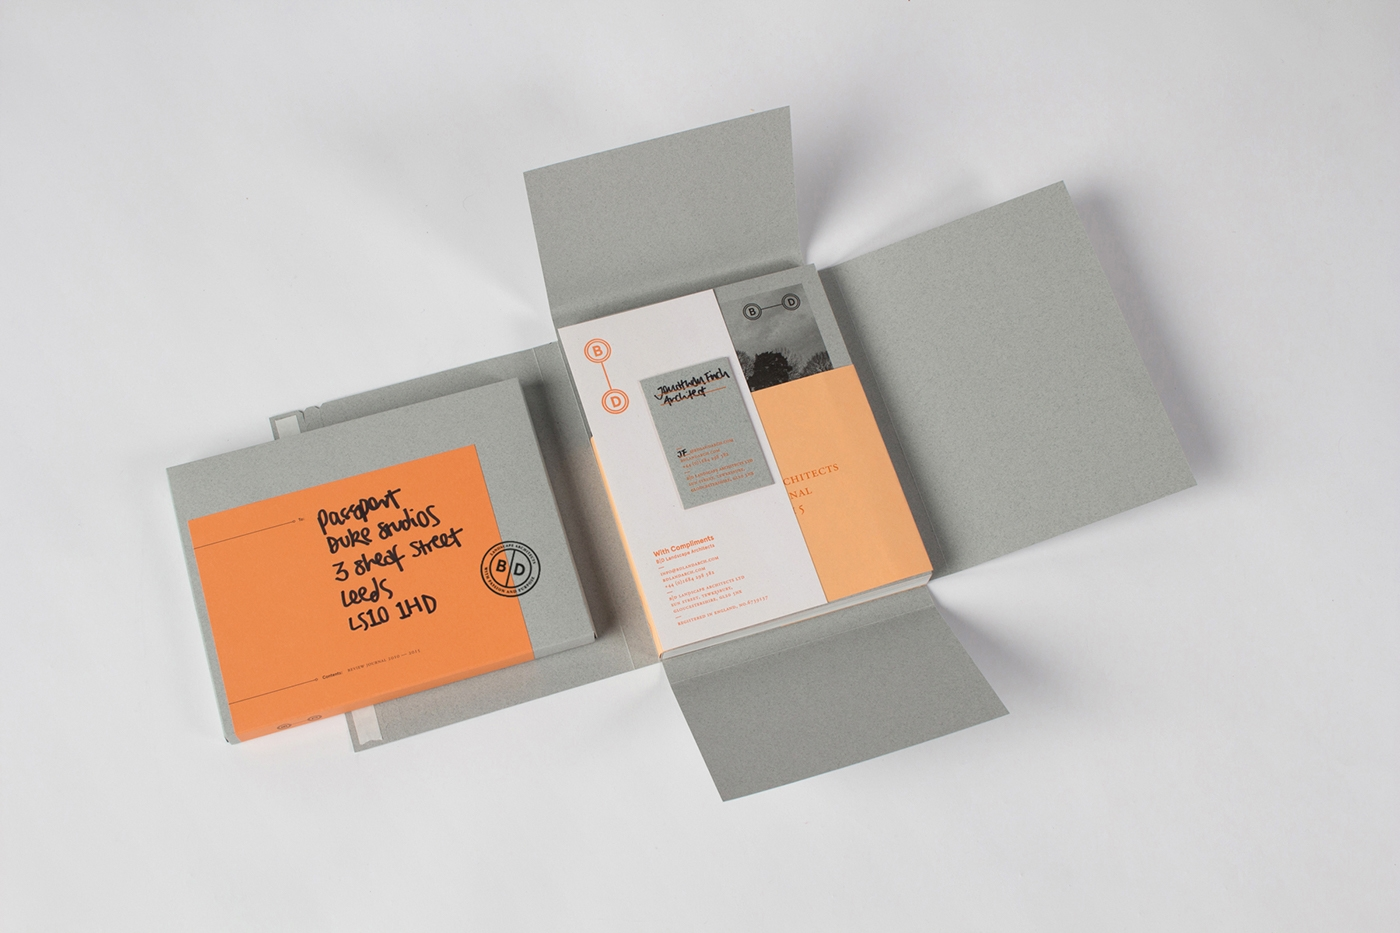 Landscape Paper Packaging Design